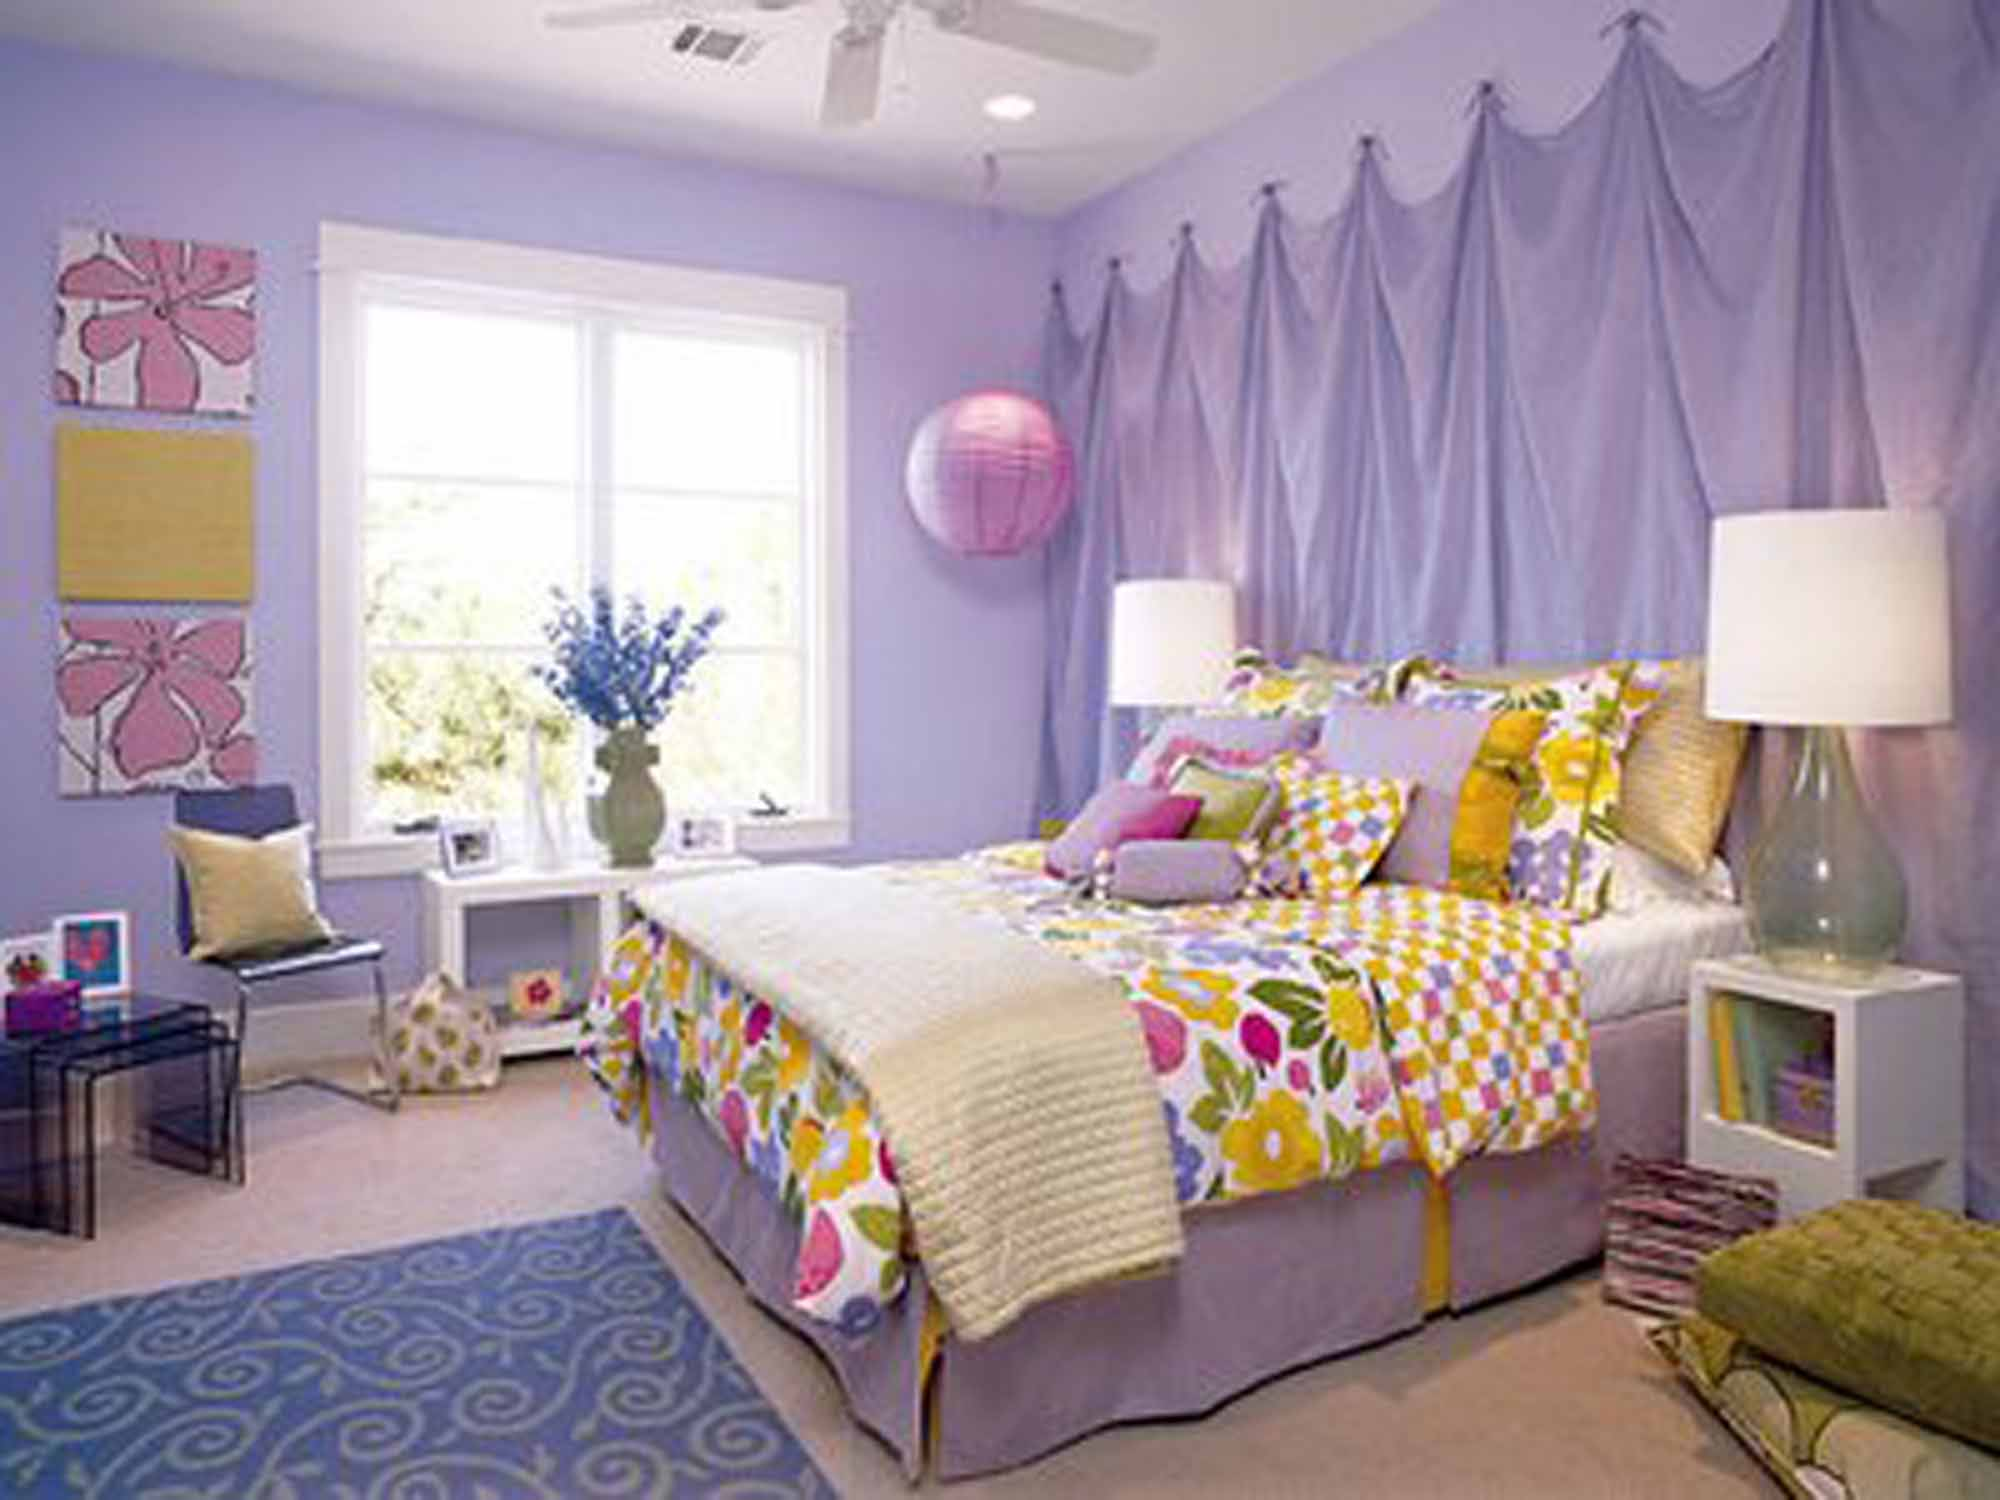 Purple Wall Paint And Curtain Decoration (Photo 1 of 10)